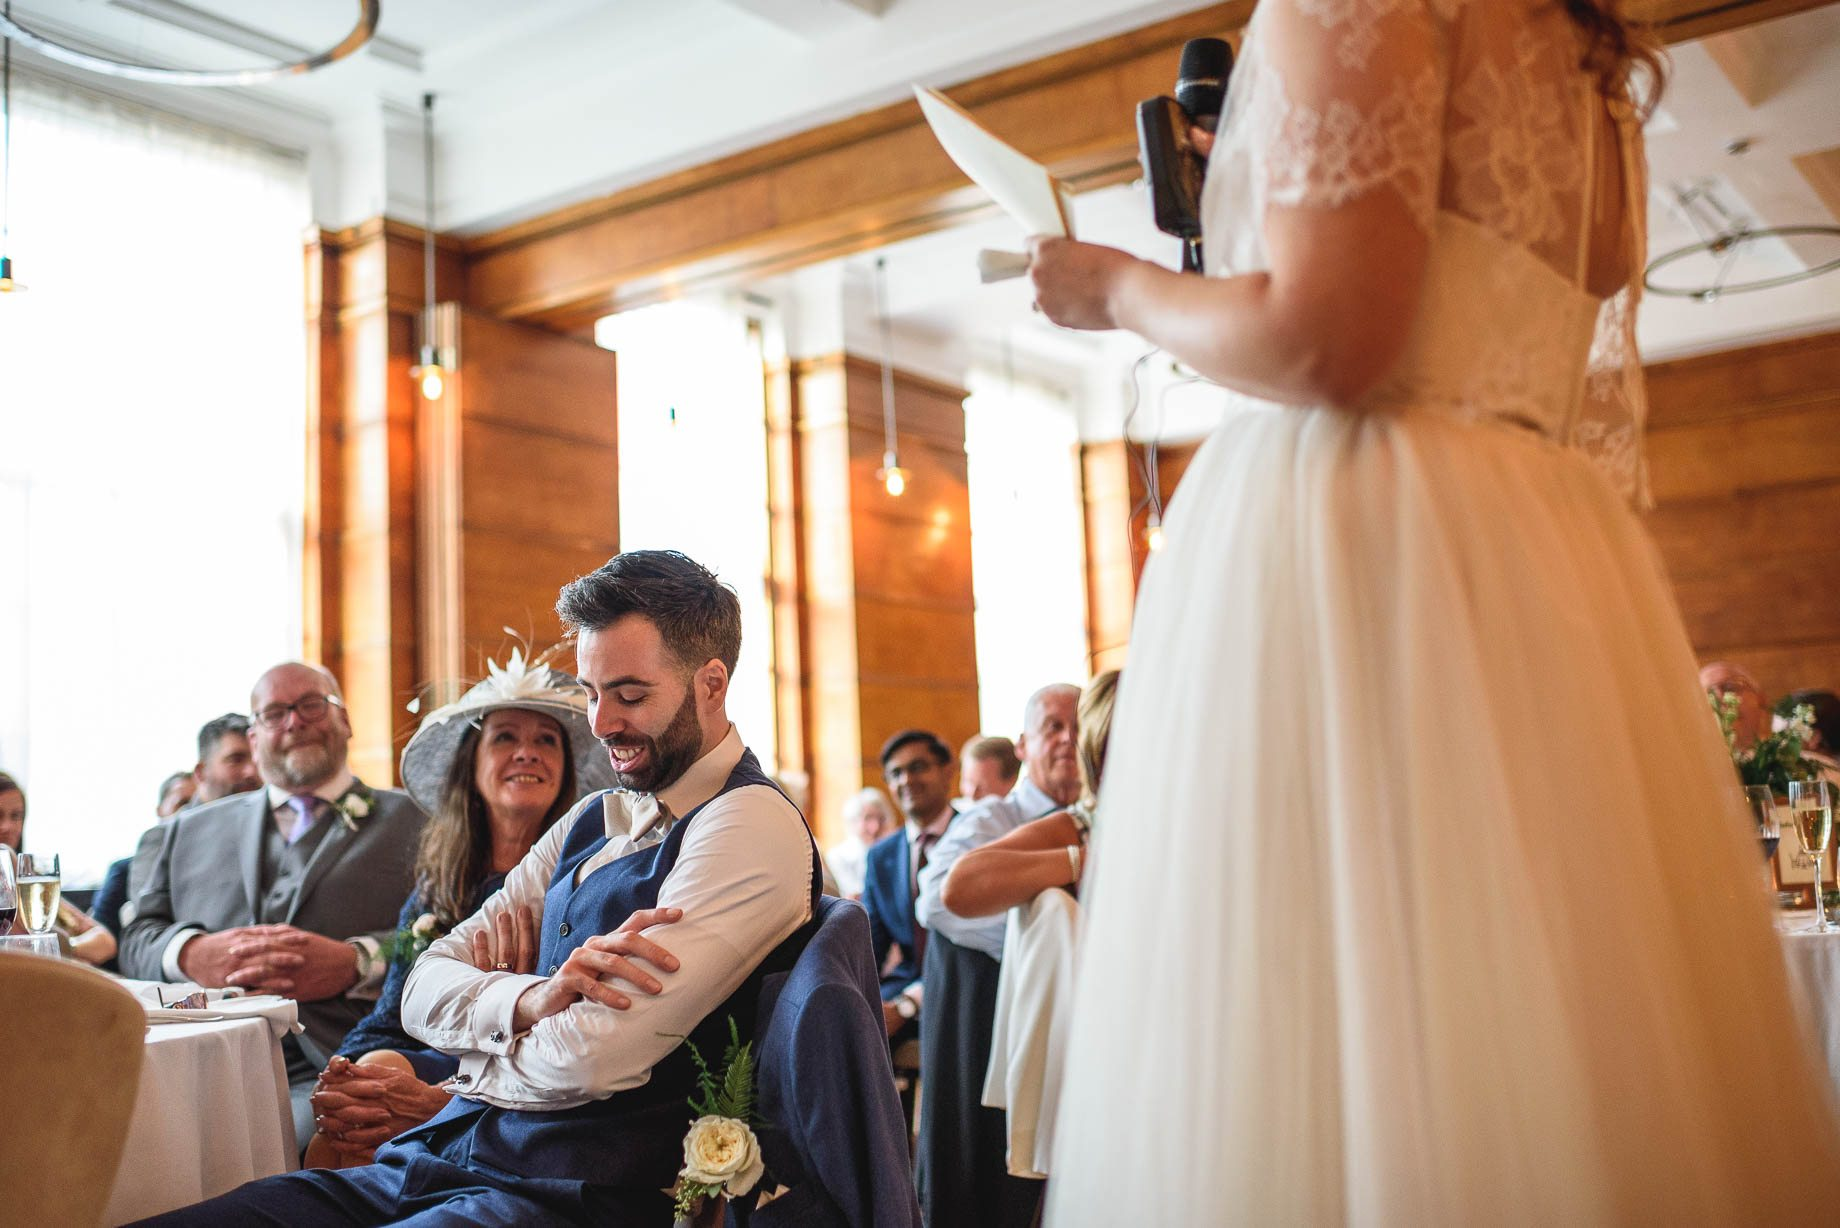 London Wedding Photography - Guy Collier Photography - LJ + Russell (115 of 155)